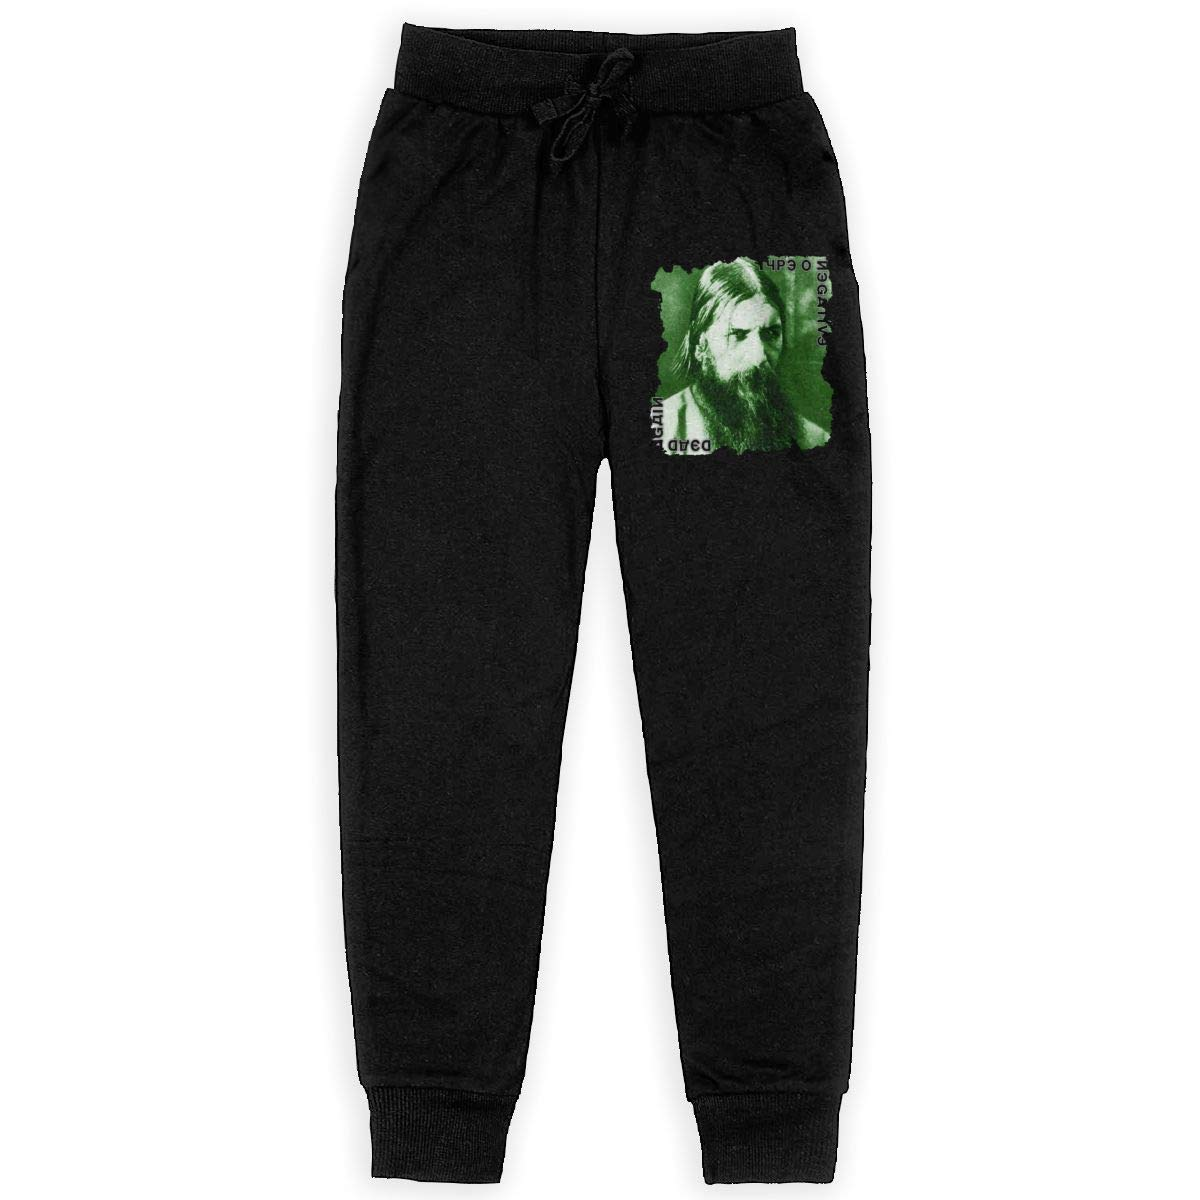 Big Boys Soft and Cozy Light Weight Sweatpants Sizes Youth Aerosmith Aero